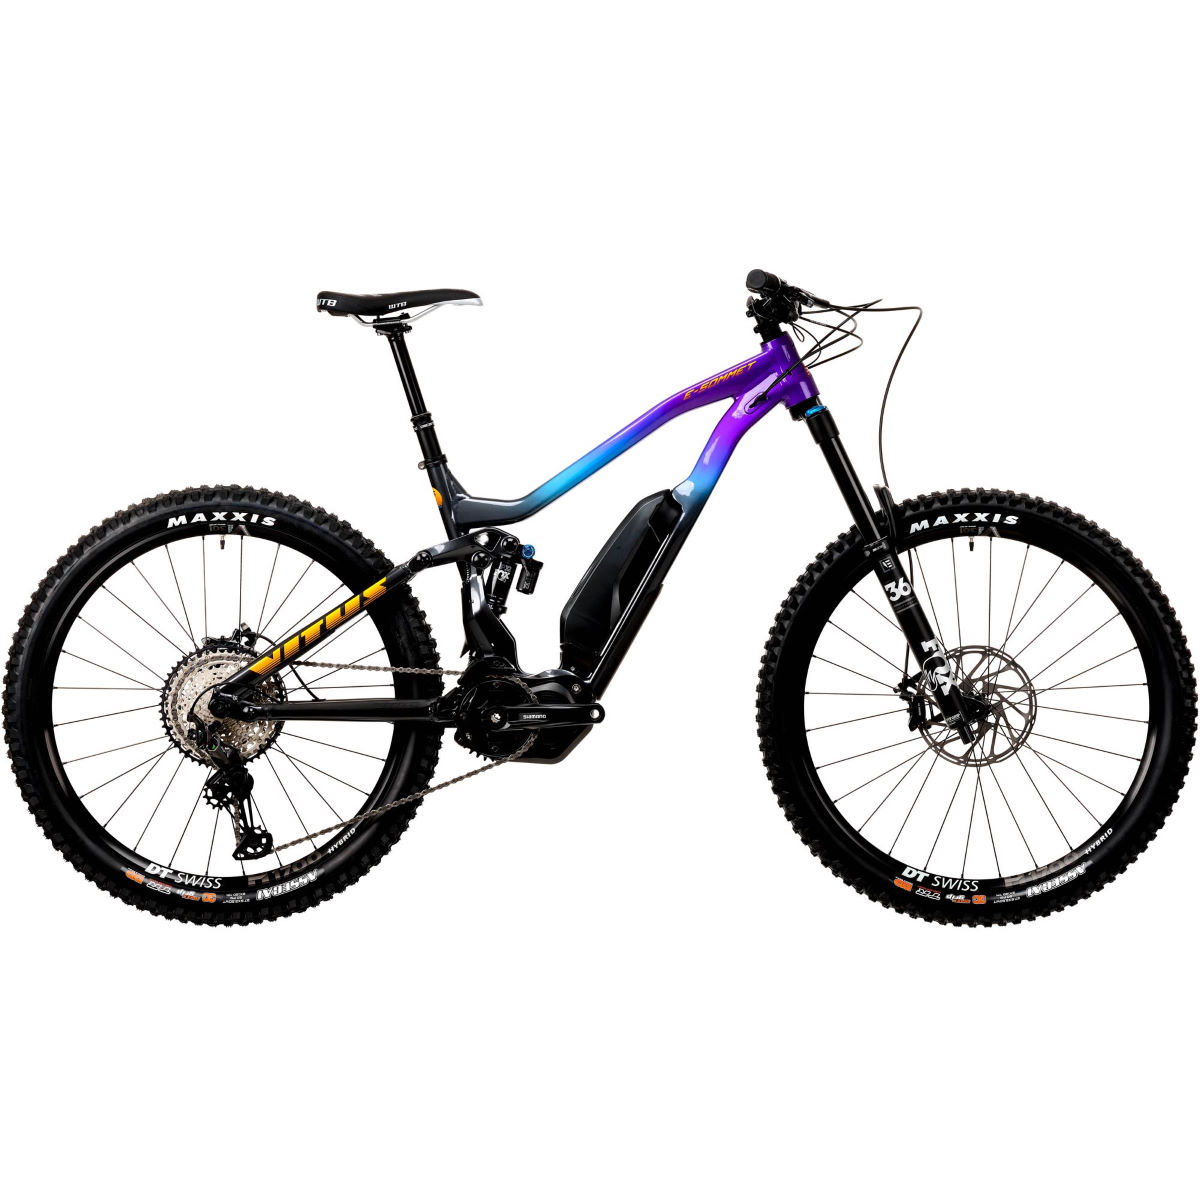 Vitus Vitus E-Sommet VRS E-Bike (XT 1x12 - 2020)   Electric Mountain Bikes